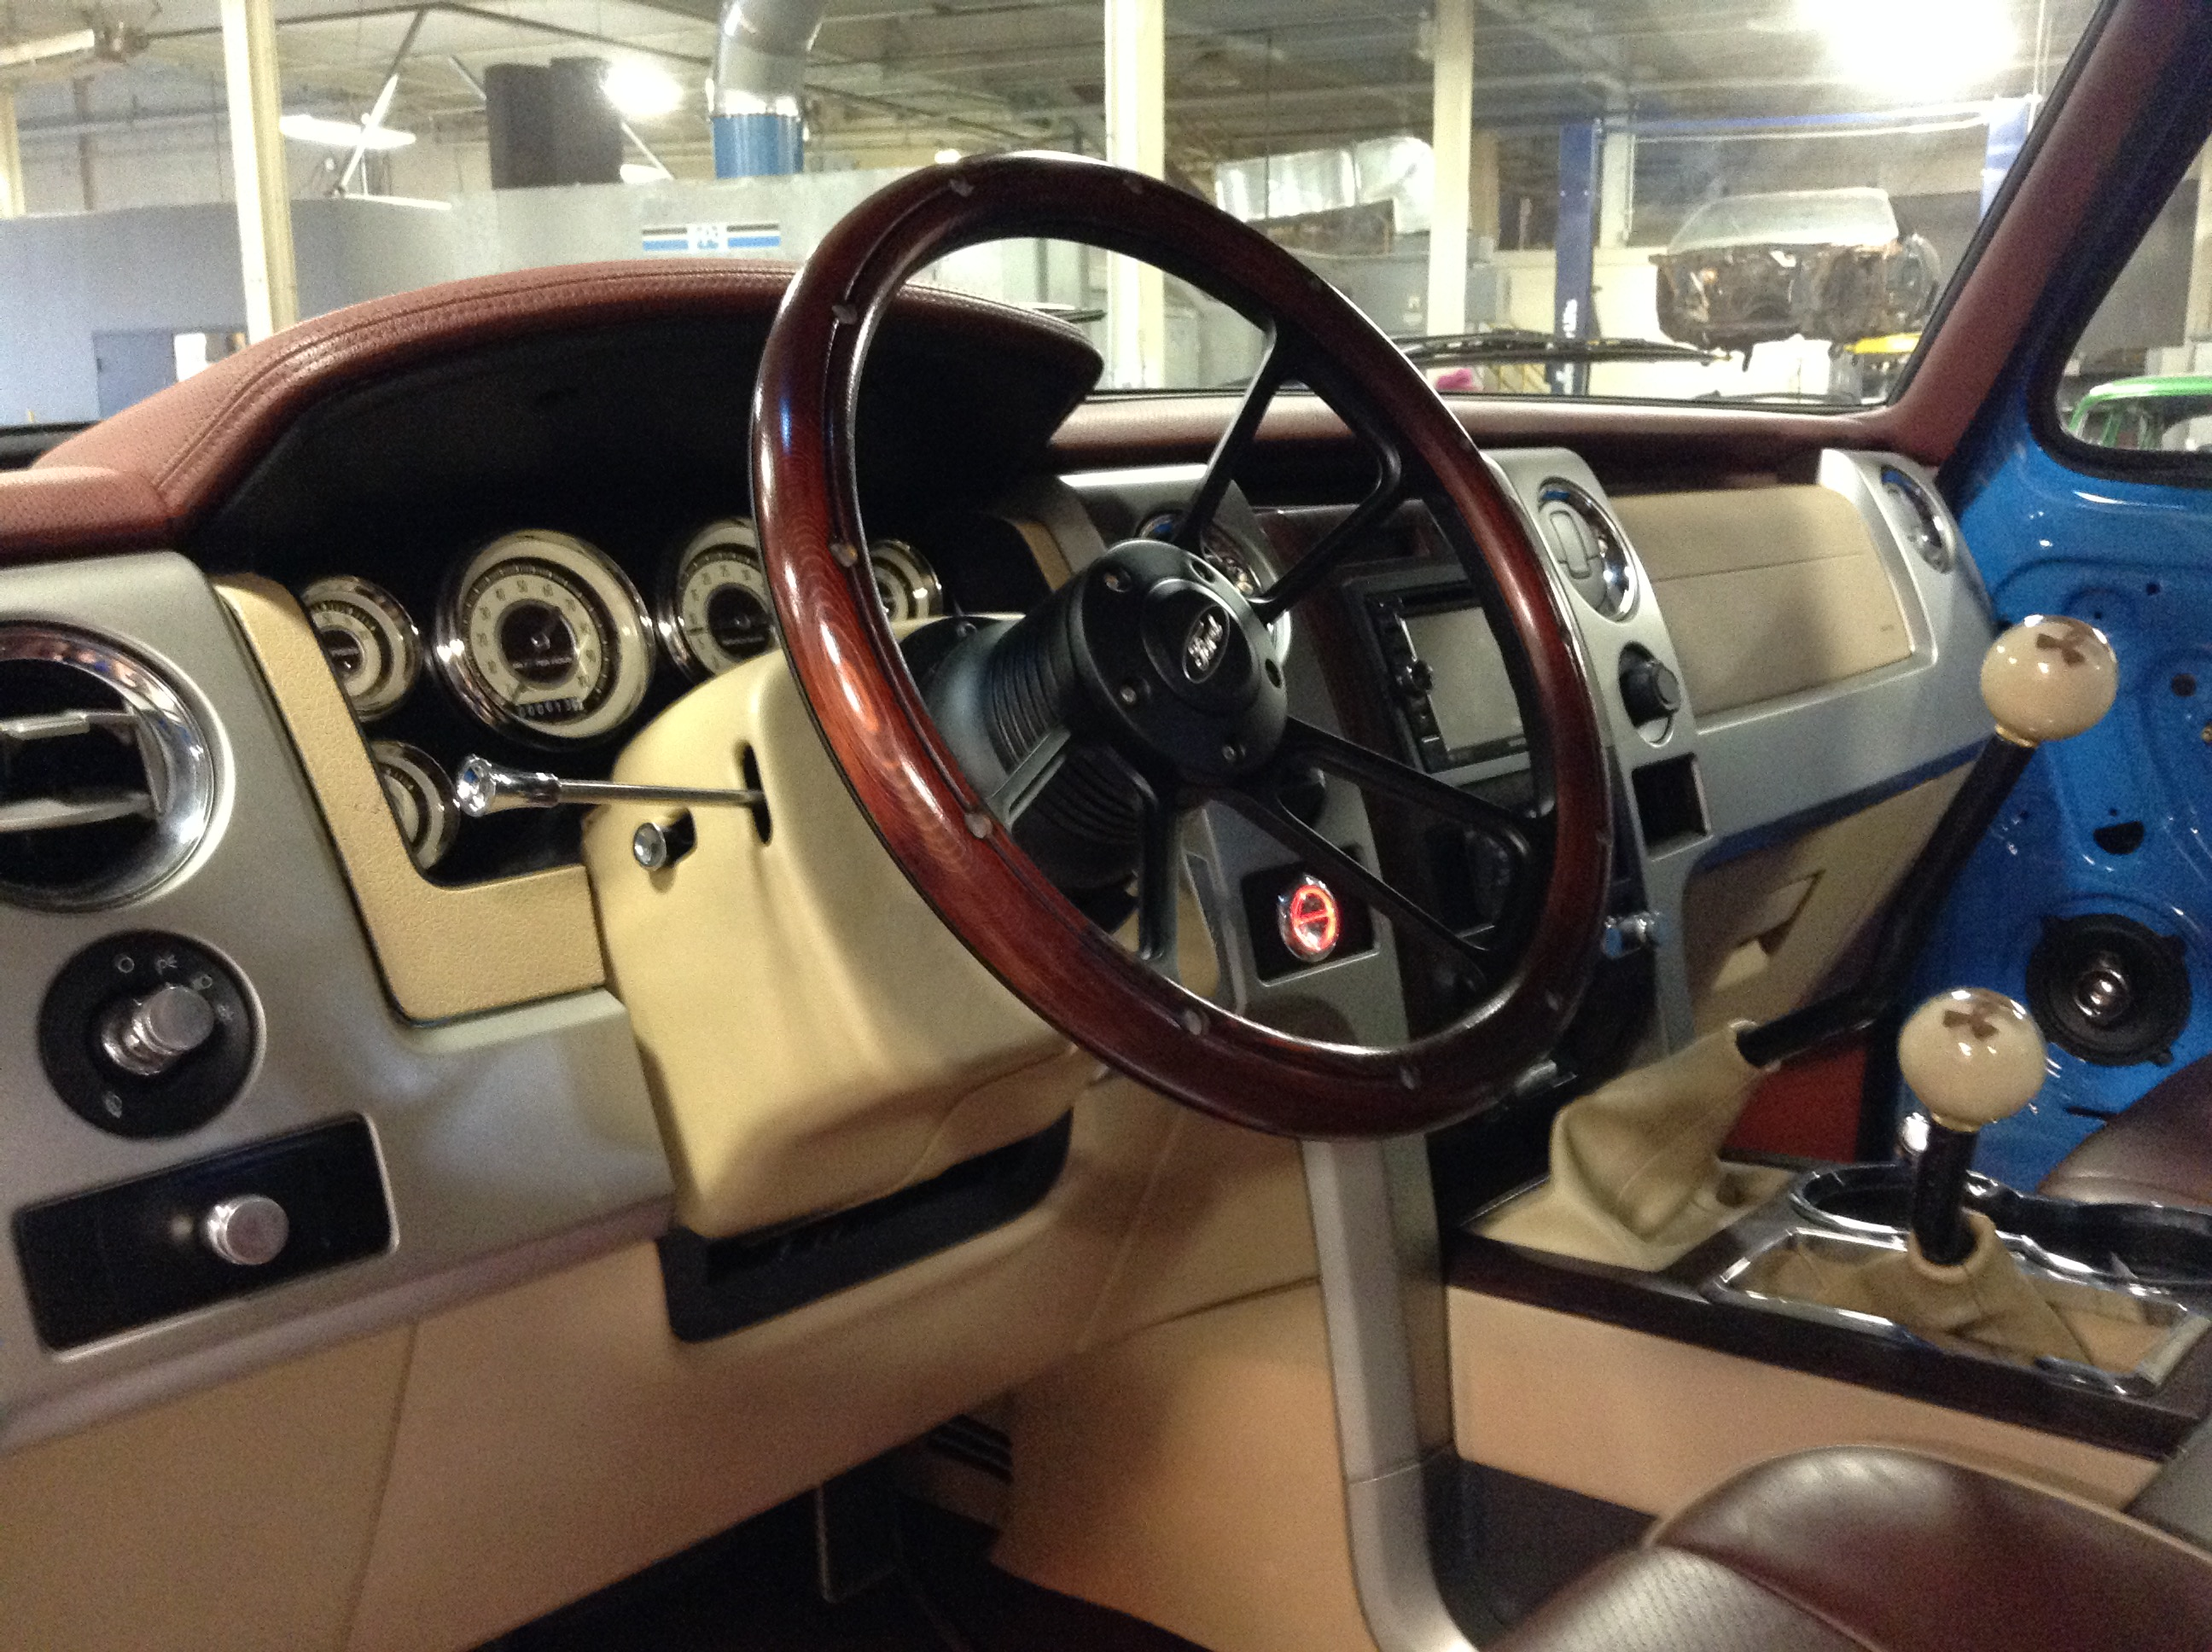 expedition hr king seats brings edition interior the whole ranch gaywheels ford kingranch